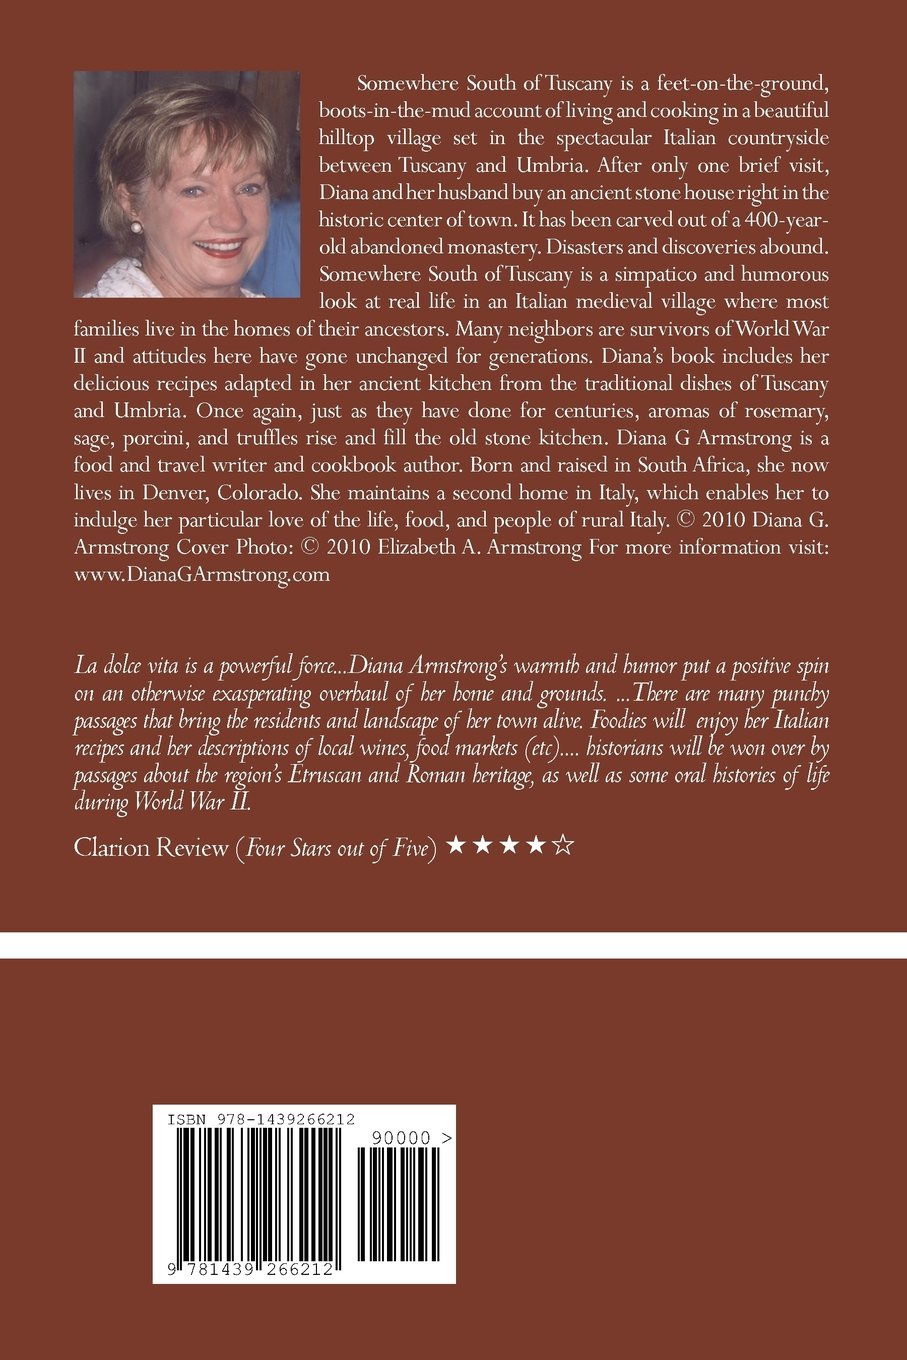 Somewhere South of Tuscany: 5 Years In a Four-Cat Town: Diana Armstrong:  9781439266212: Amazon.com: Books